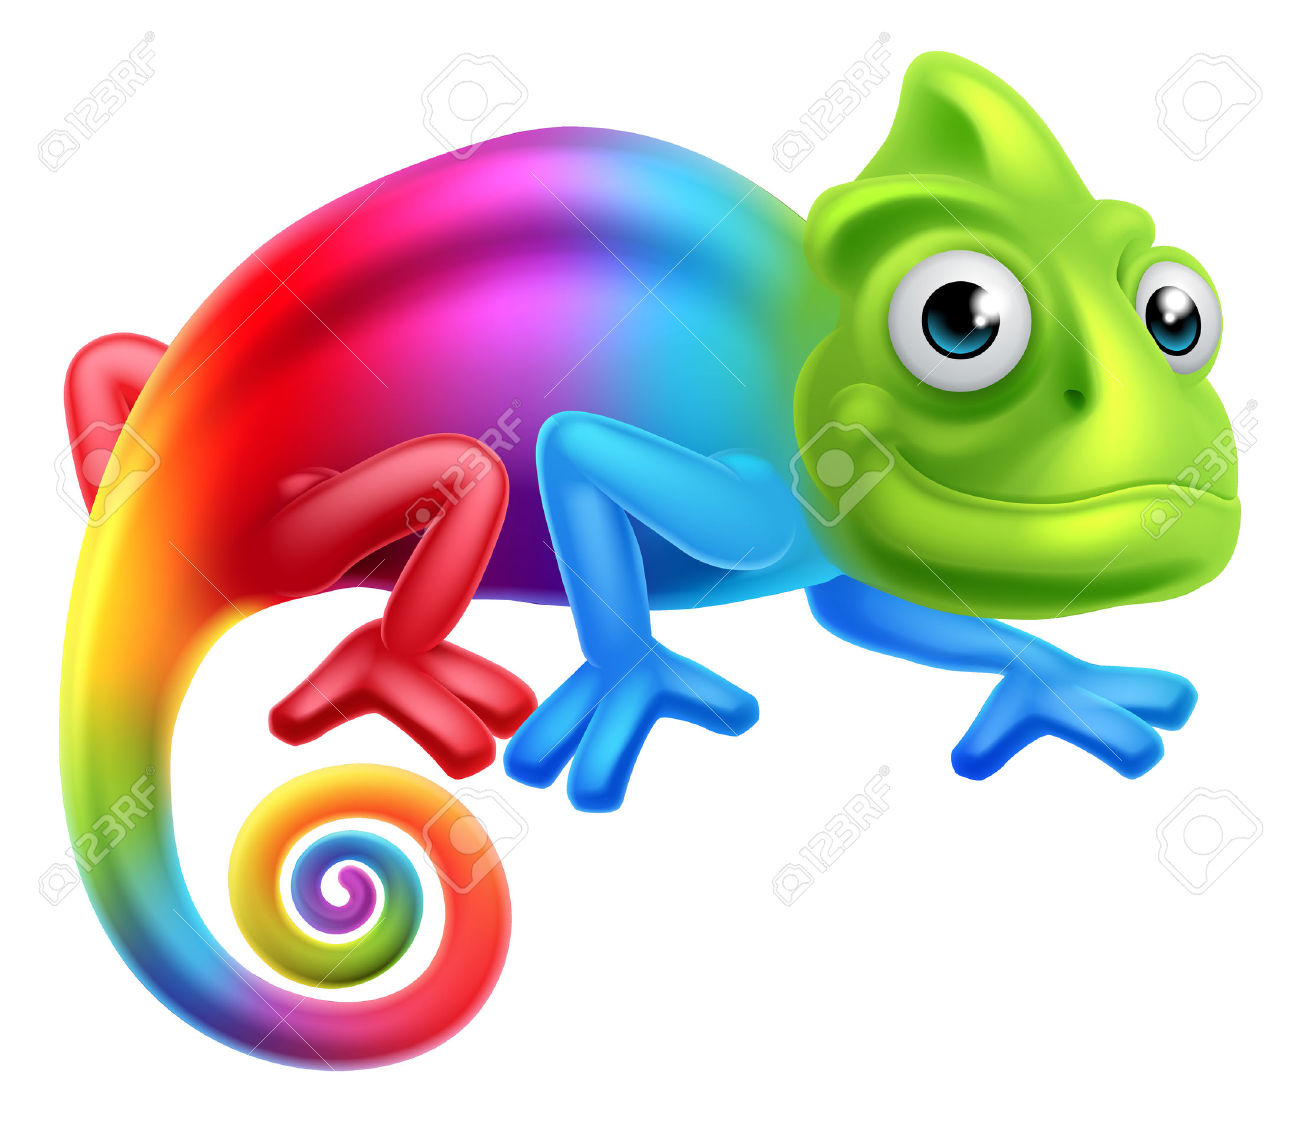 A Cute Cartoon Rainbow Coloured Multicoloured Chameleon Lizard.